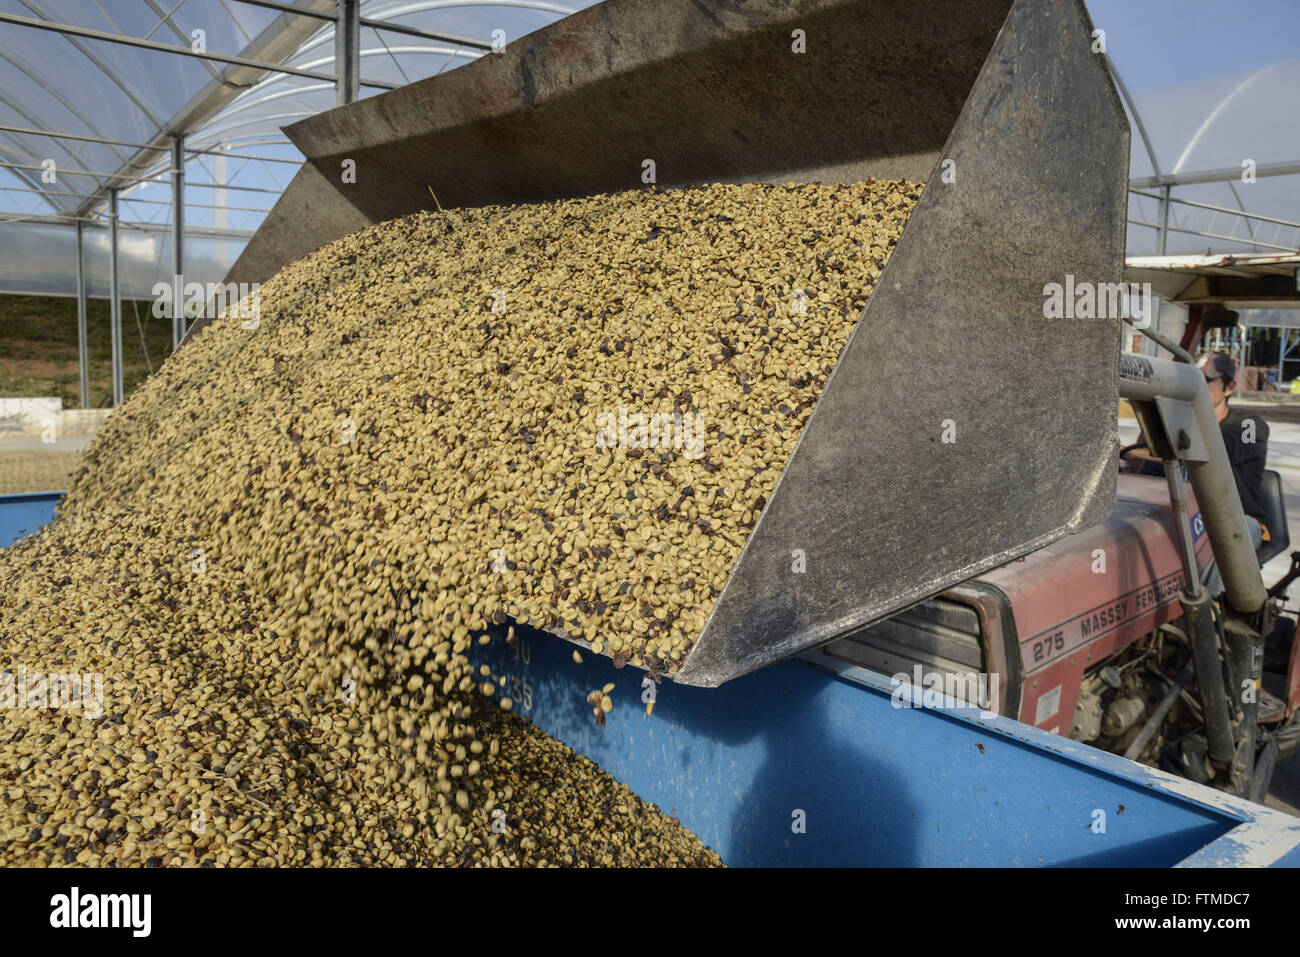 Downloading harvested coffee beans arabica - Stock Image